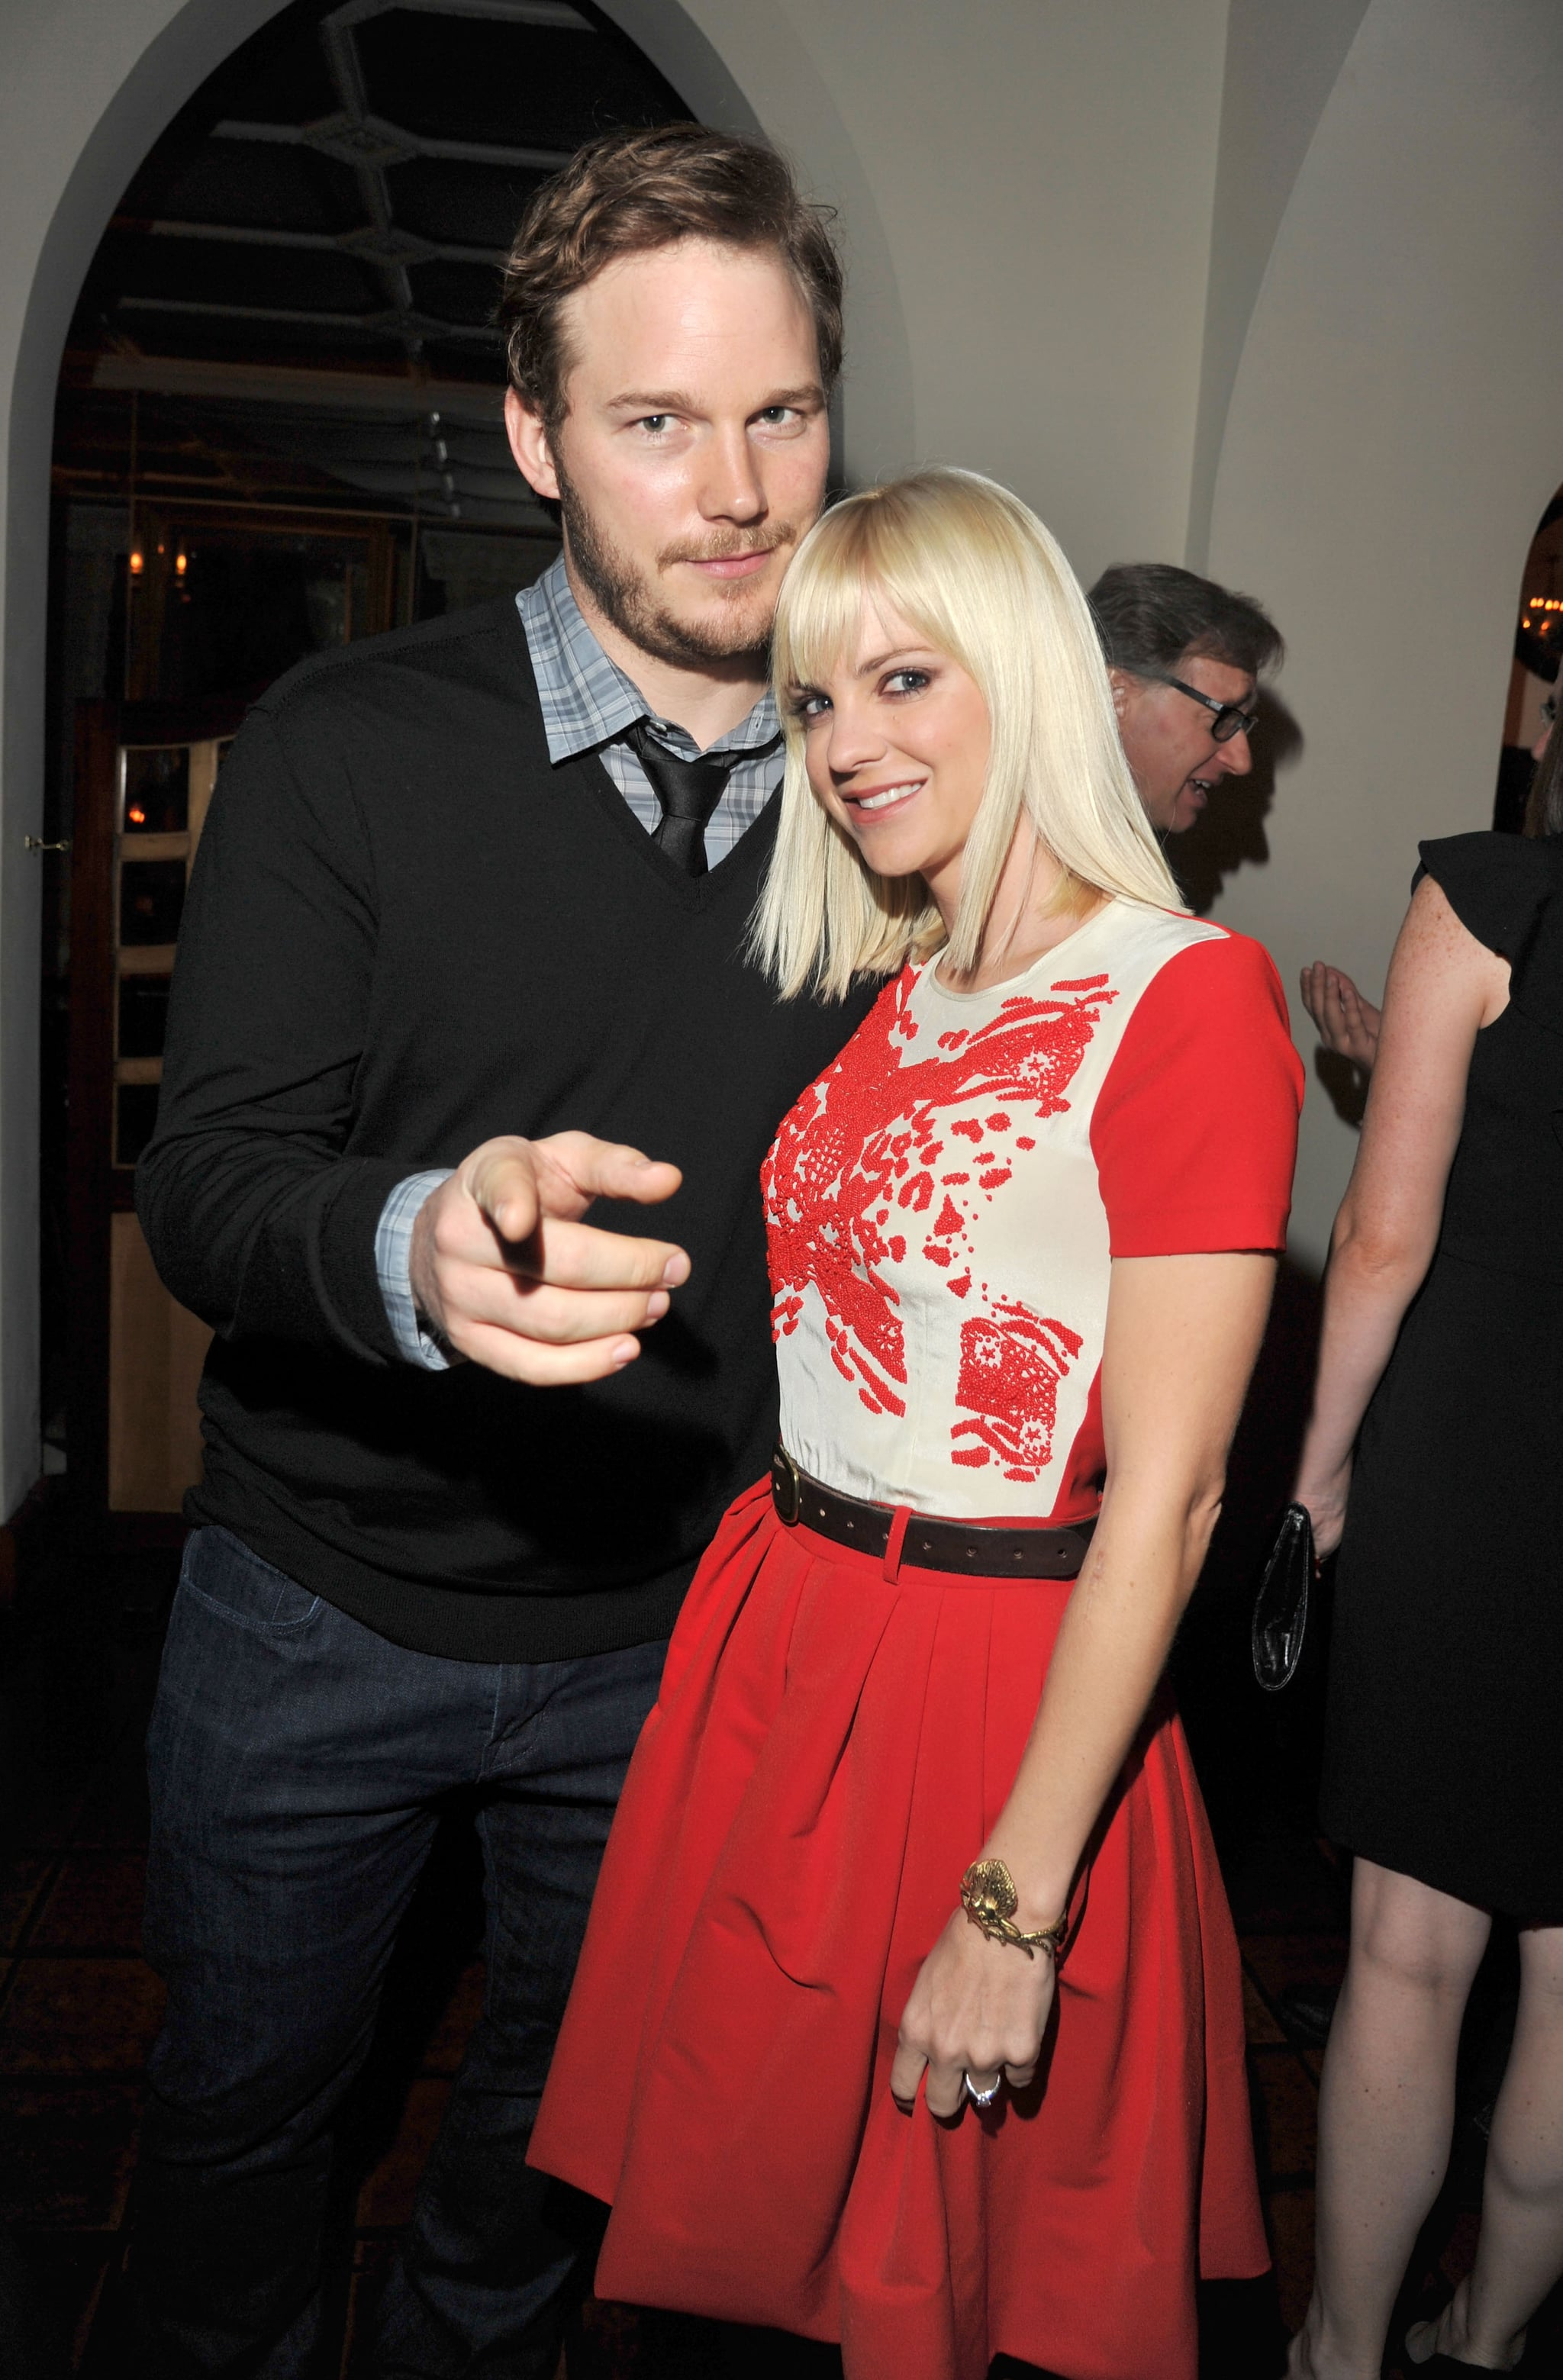 Anna leaned in to pose with Chris at the 2011 GQ Men of the Year party in LA.